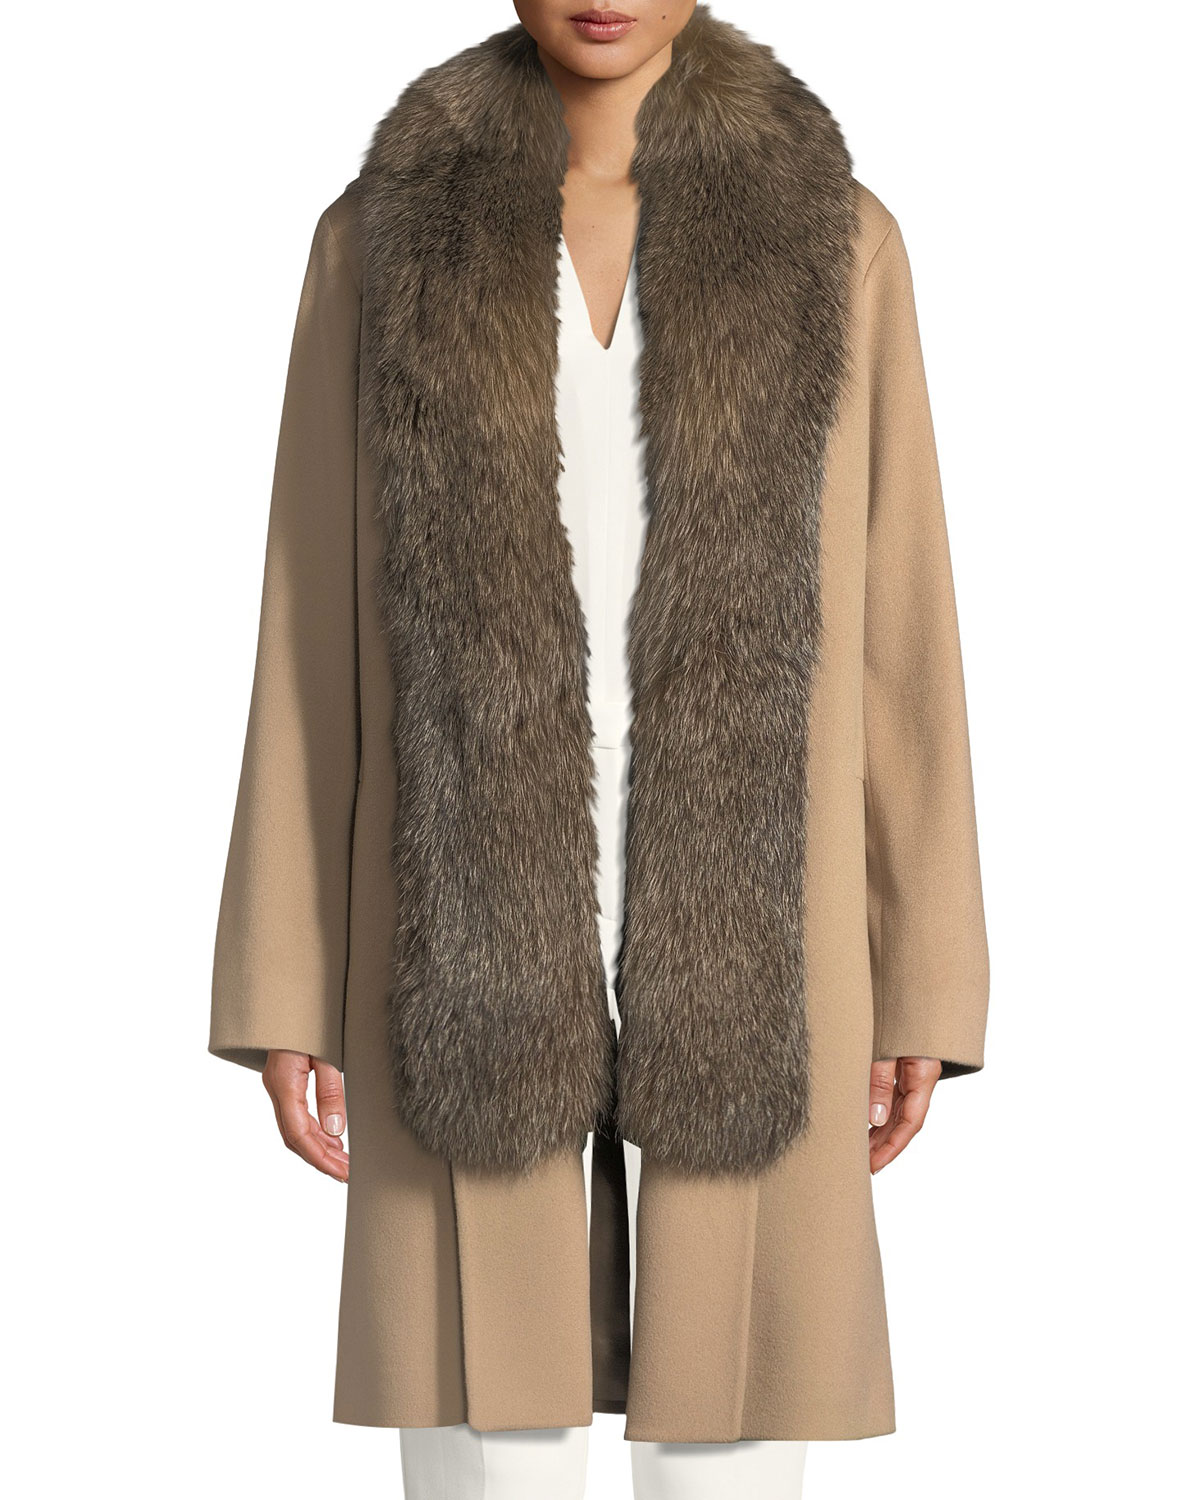 FLEURETTE Wool Clutch Coat W/ Fox Fur Tuxedo in Brown